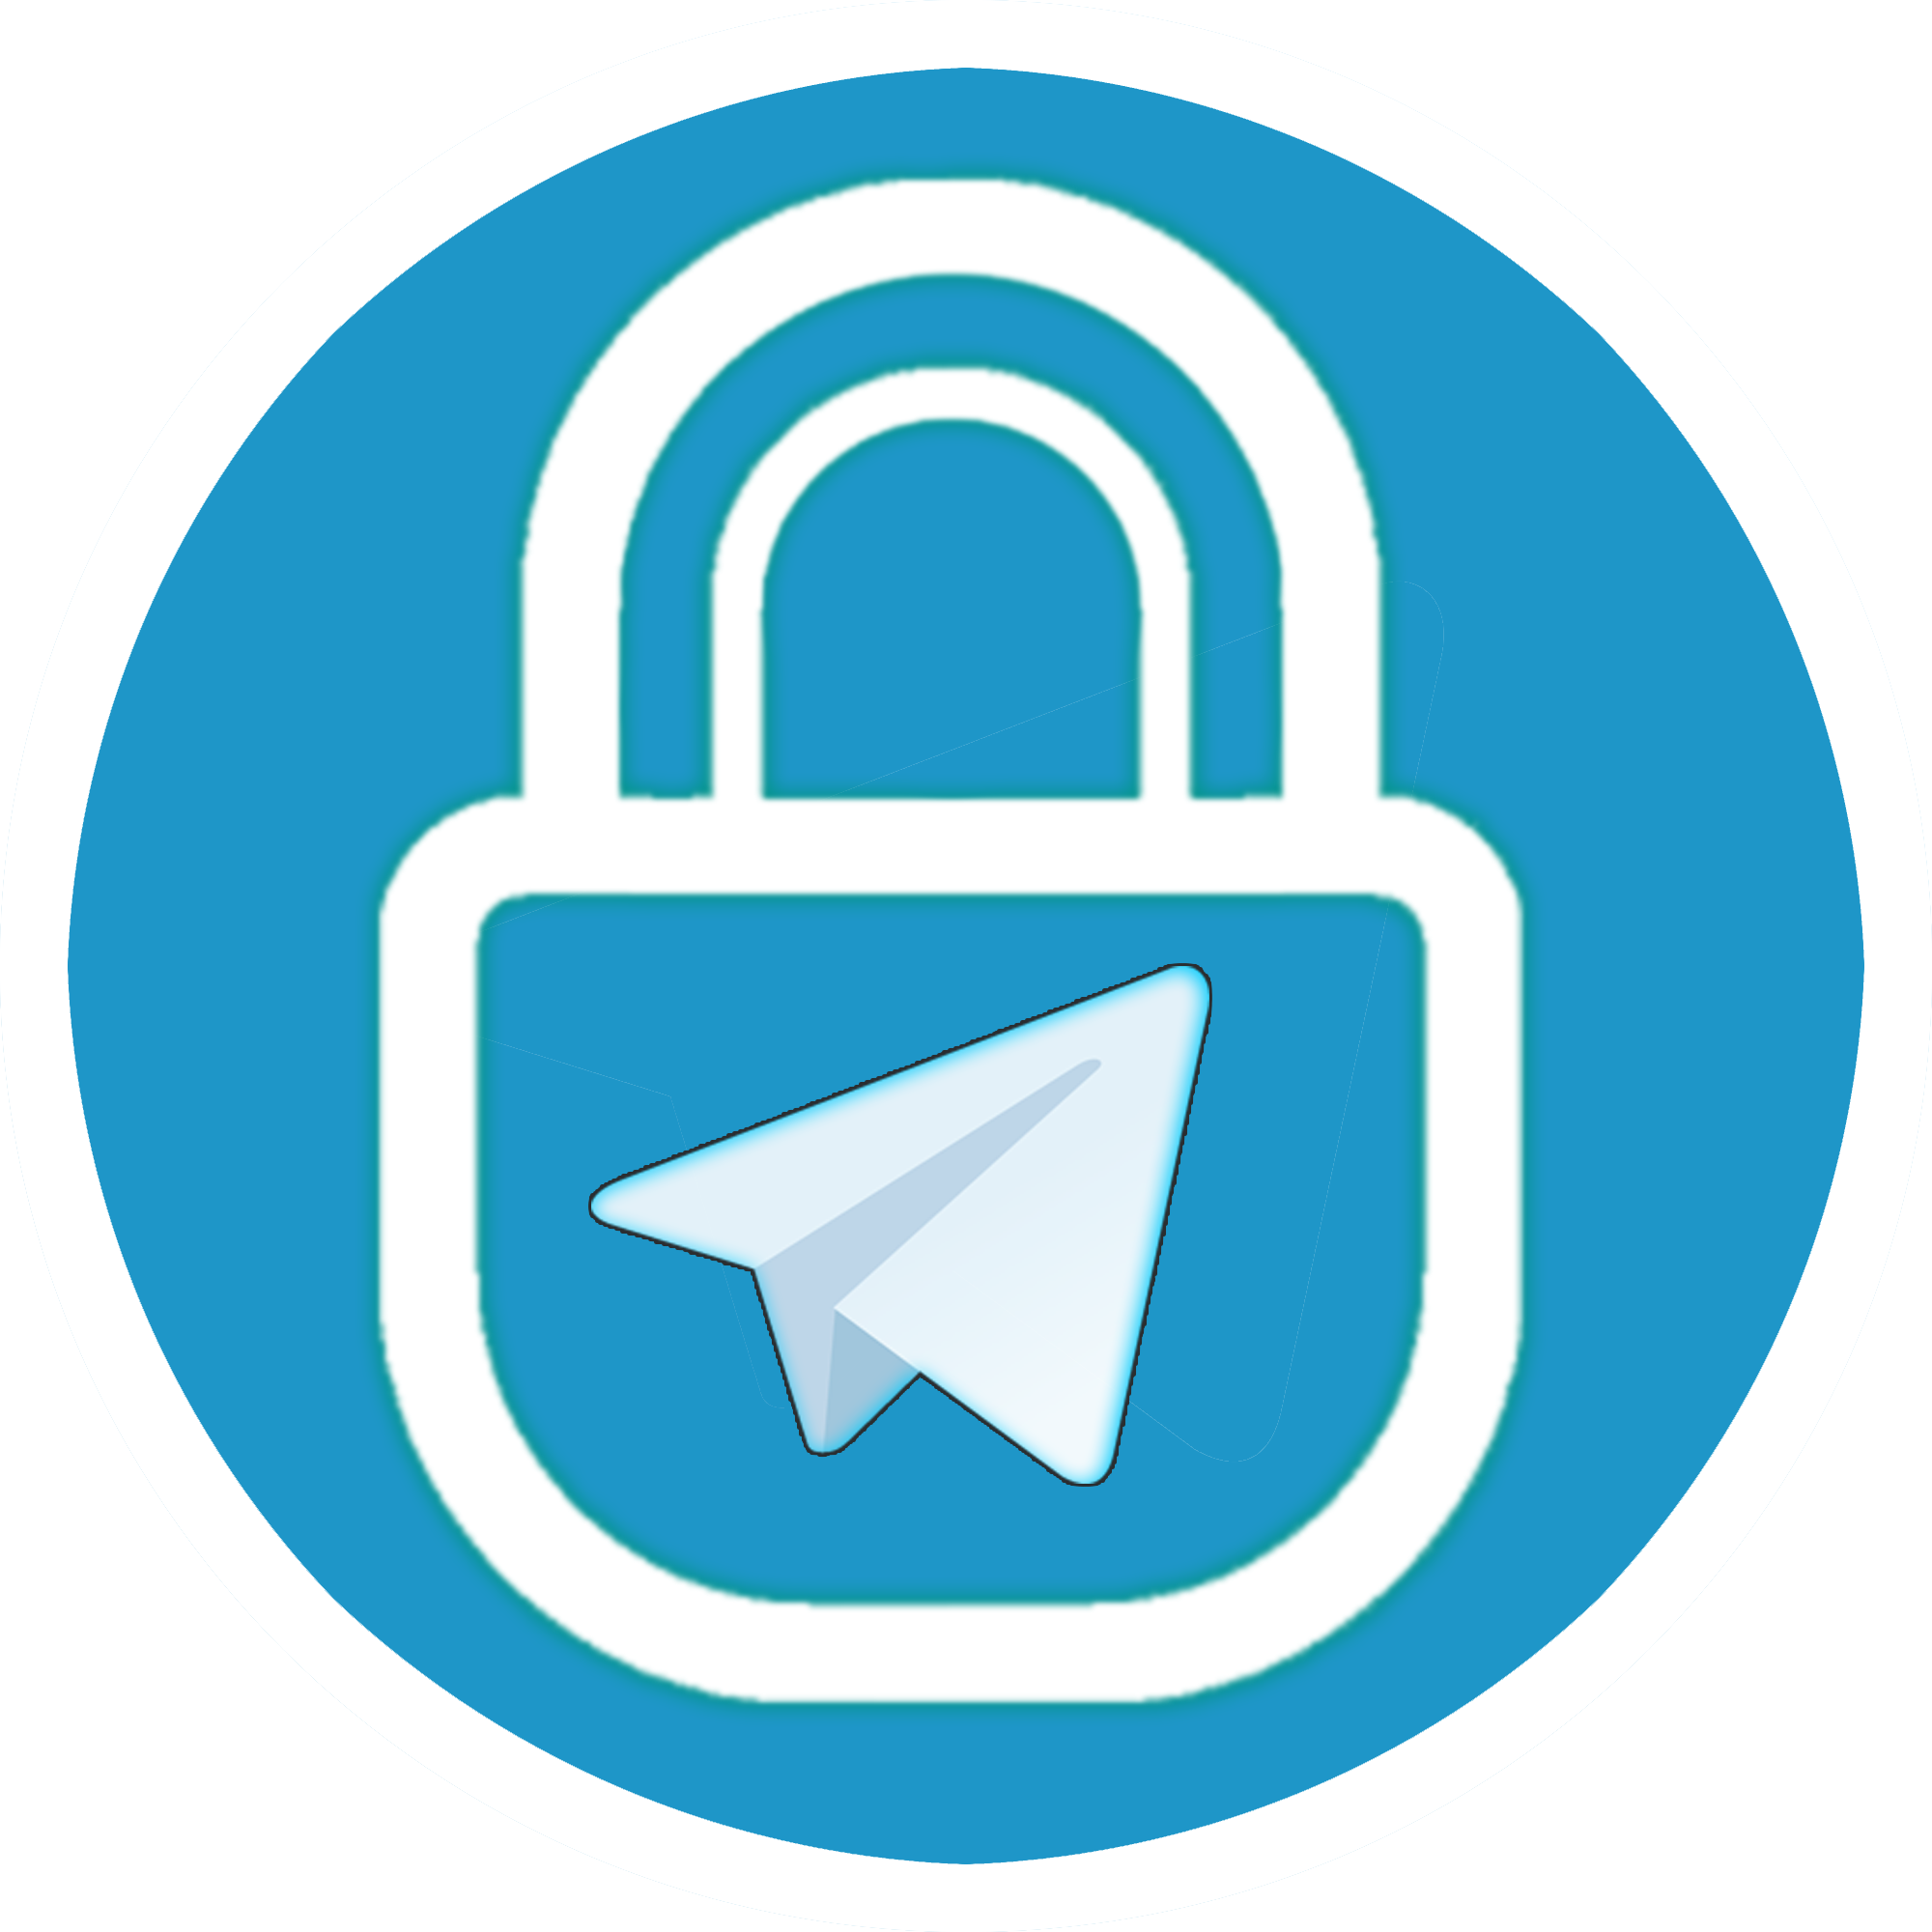 Security in telegram